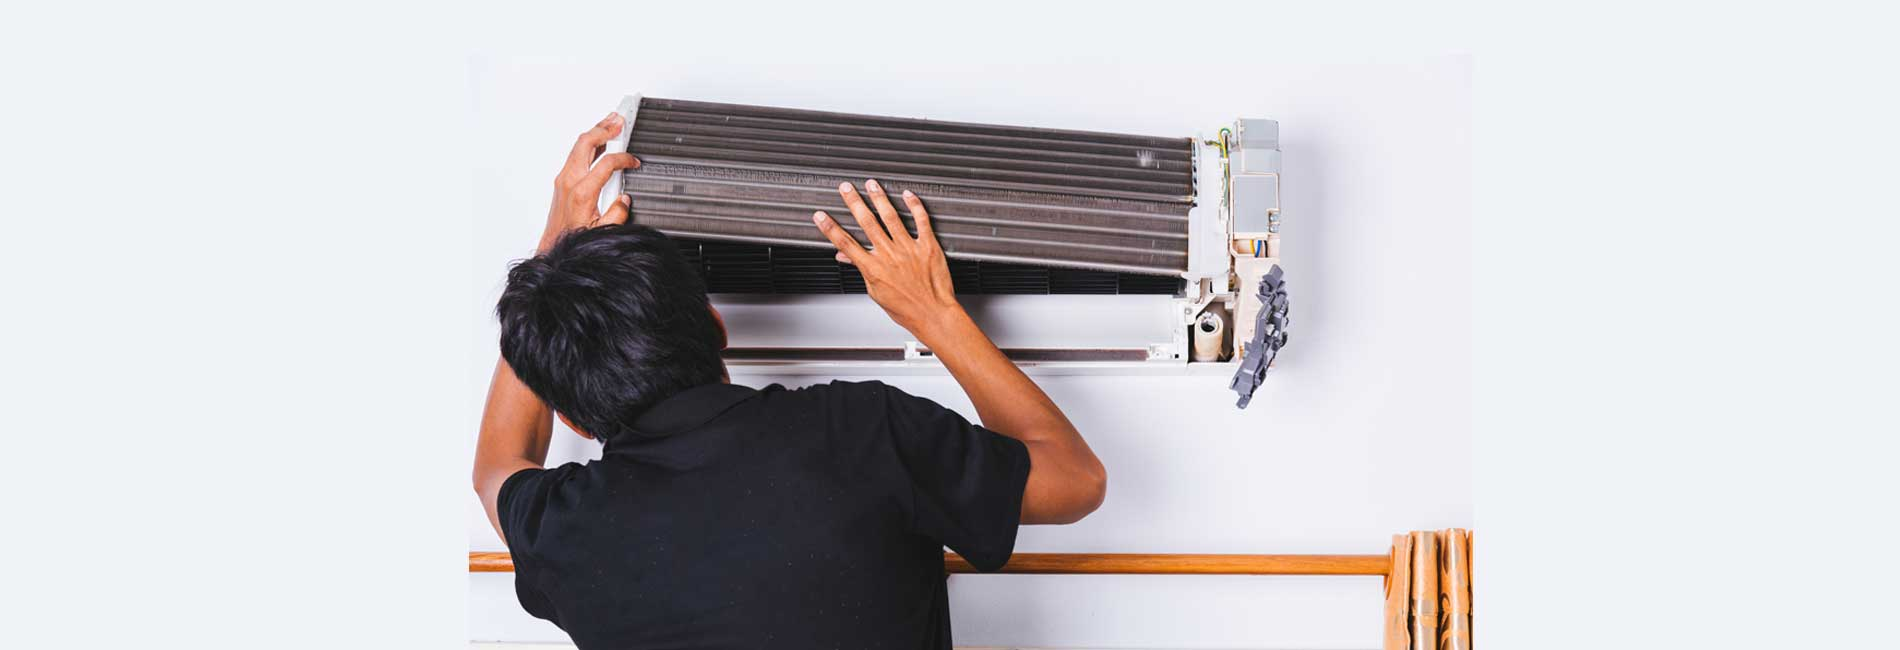 Air Conditioner Repair in Choolaimedu